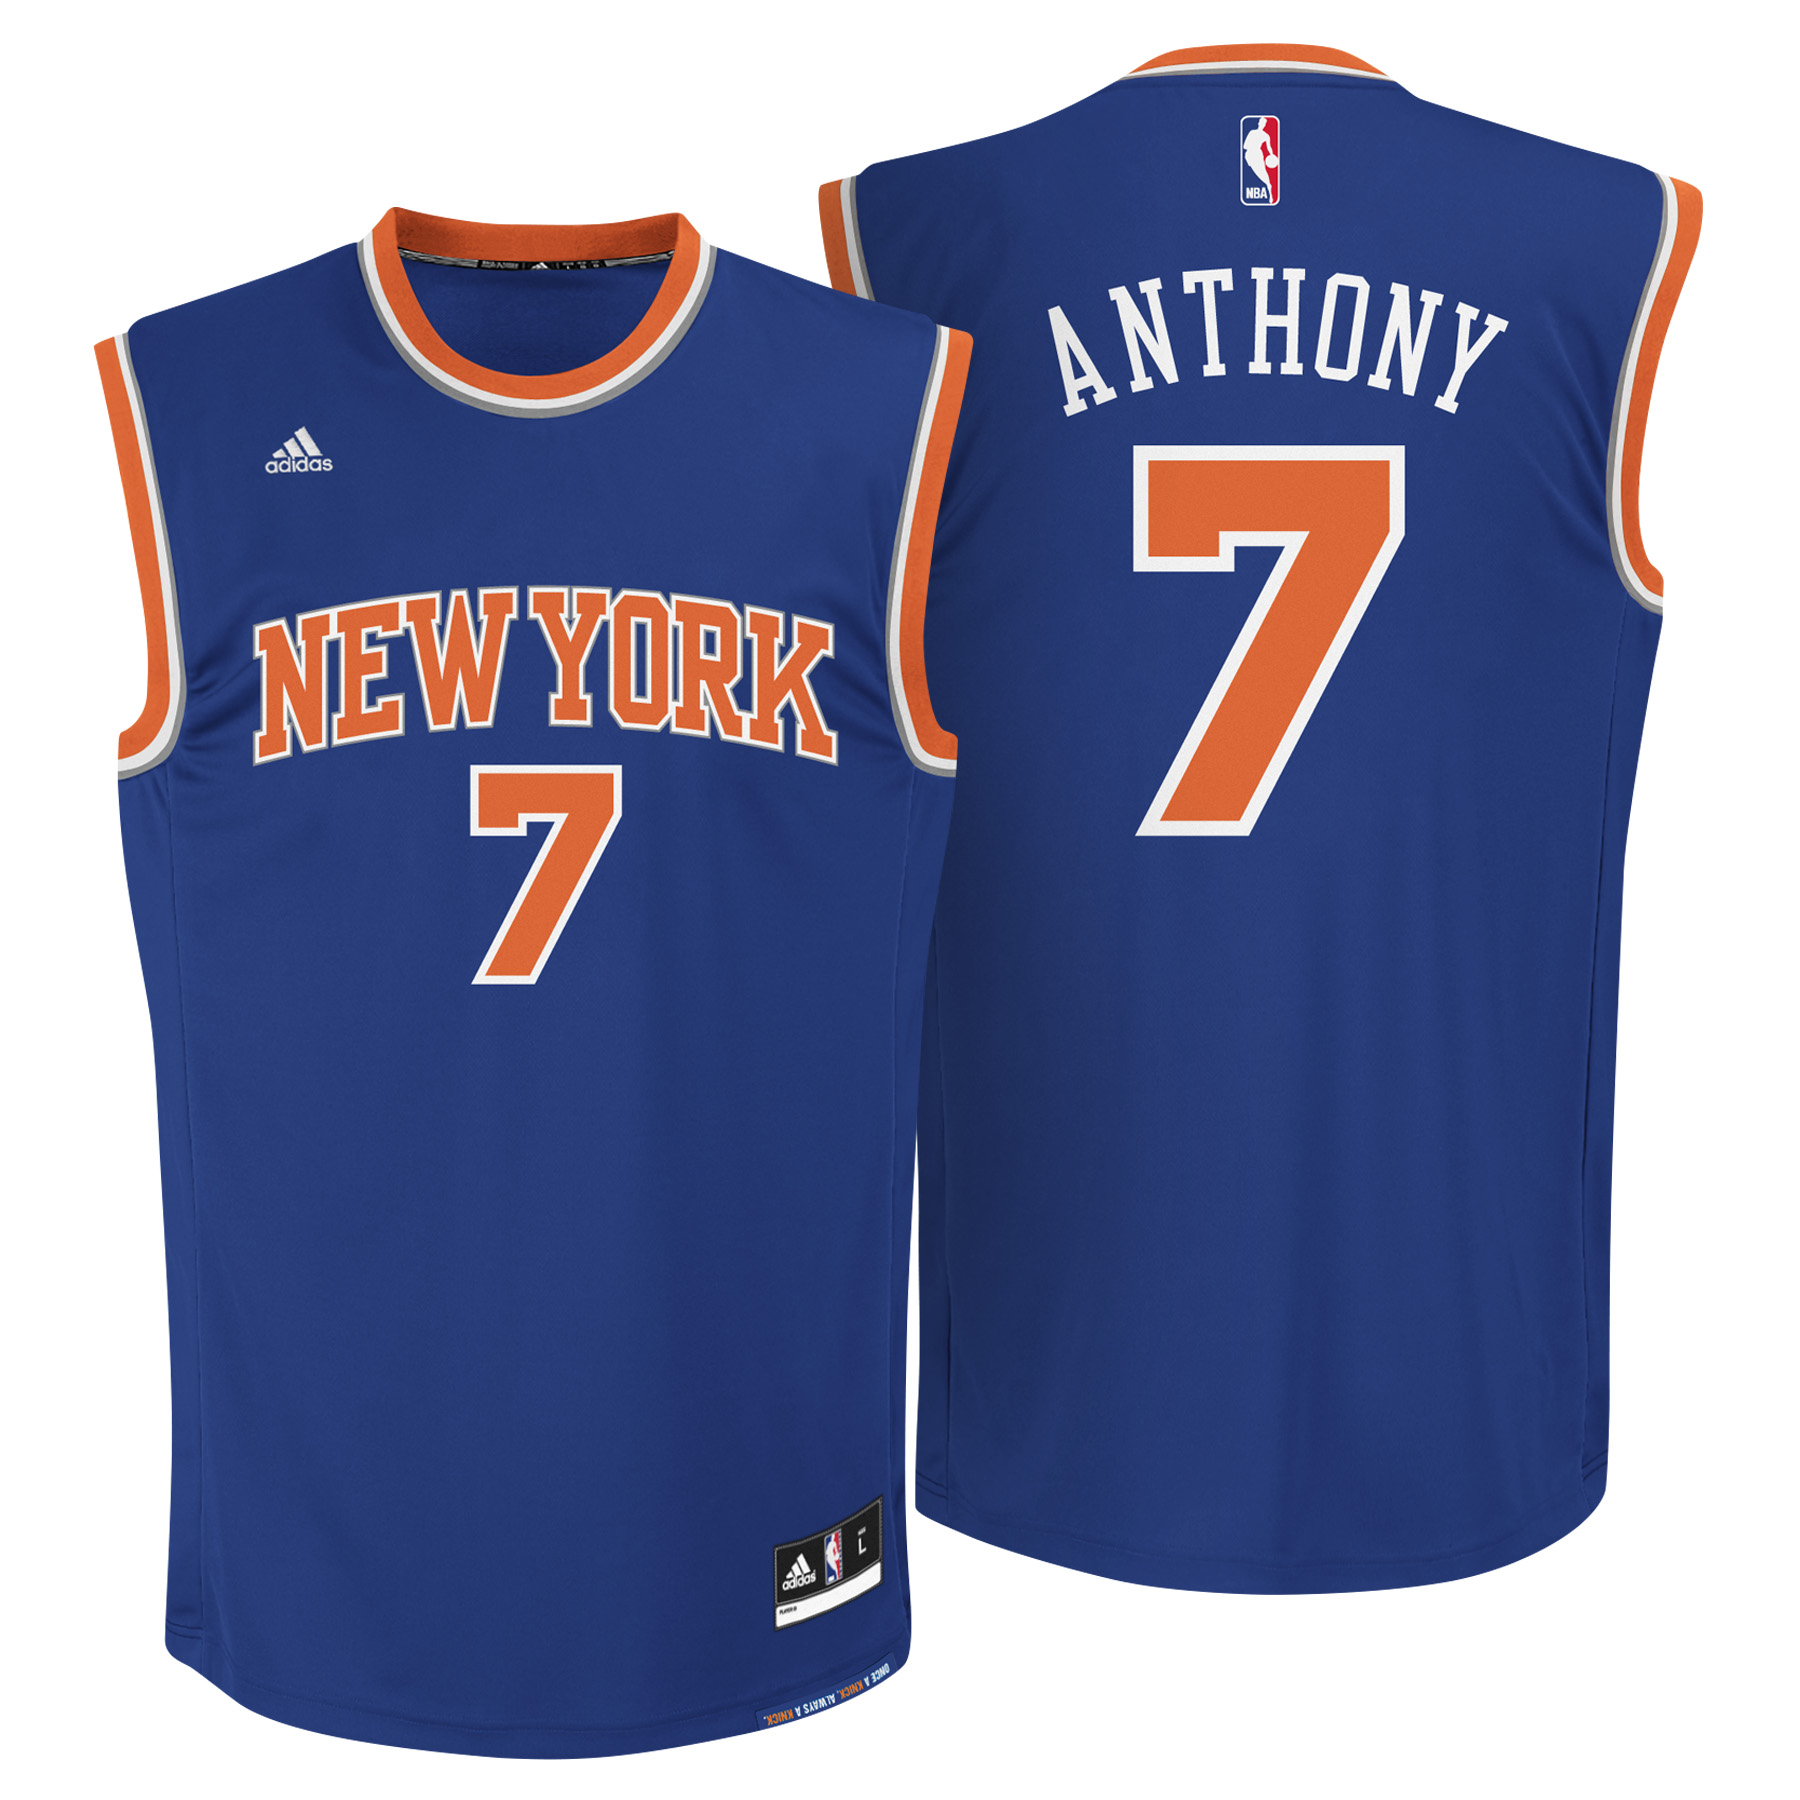 New York Knicks Road Replica Jersey - Carmelo Anthony - Mens